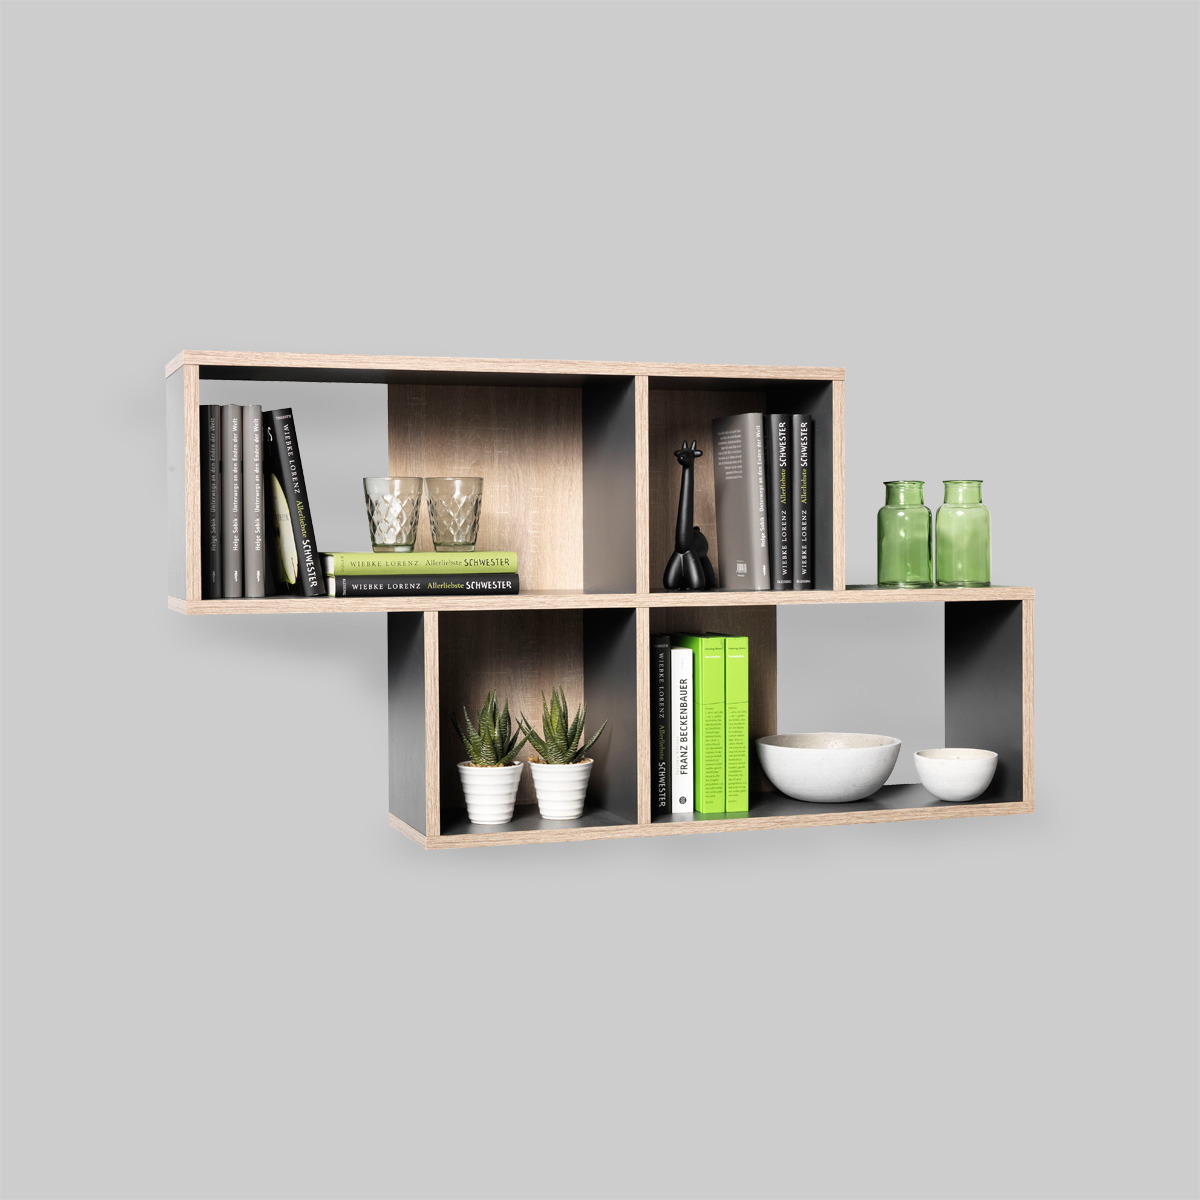 wandregal noras regal wandboard regalboard wei eiche sandeiche oder anthrazit ebay. Black Bedroom Furniture Sets. Home Design Ideas